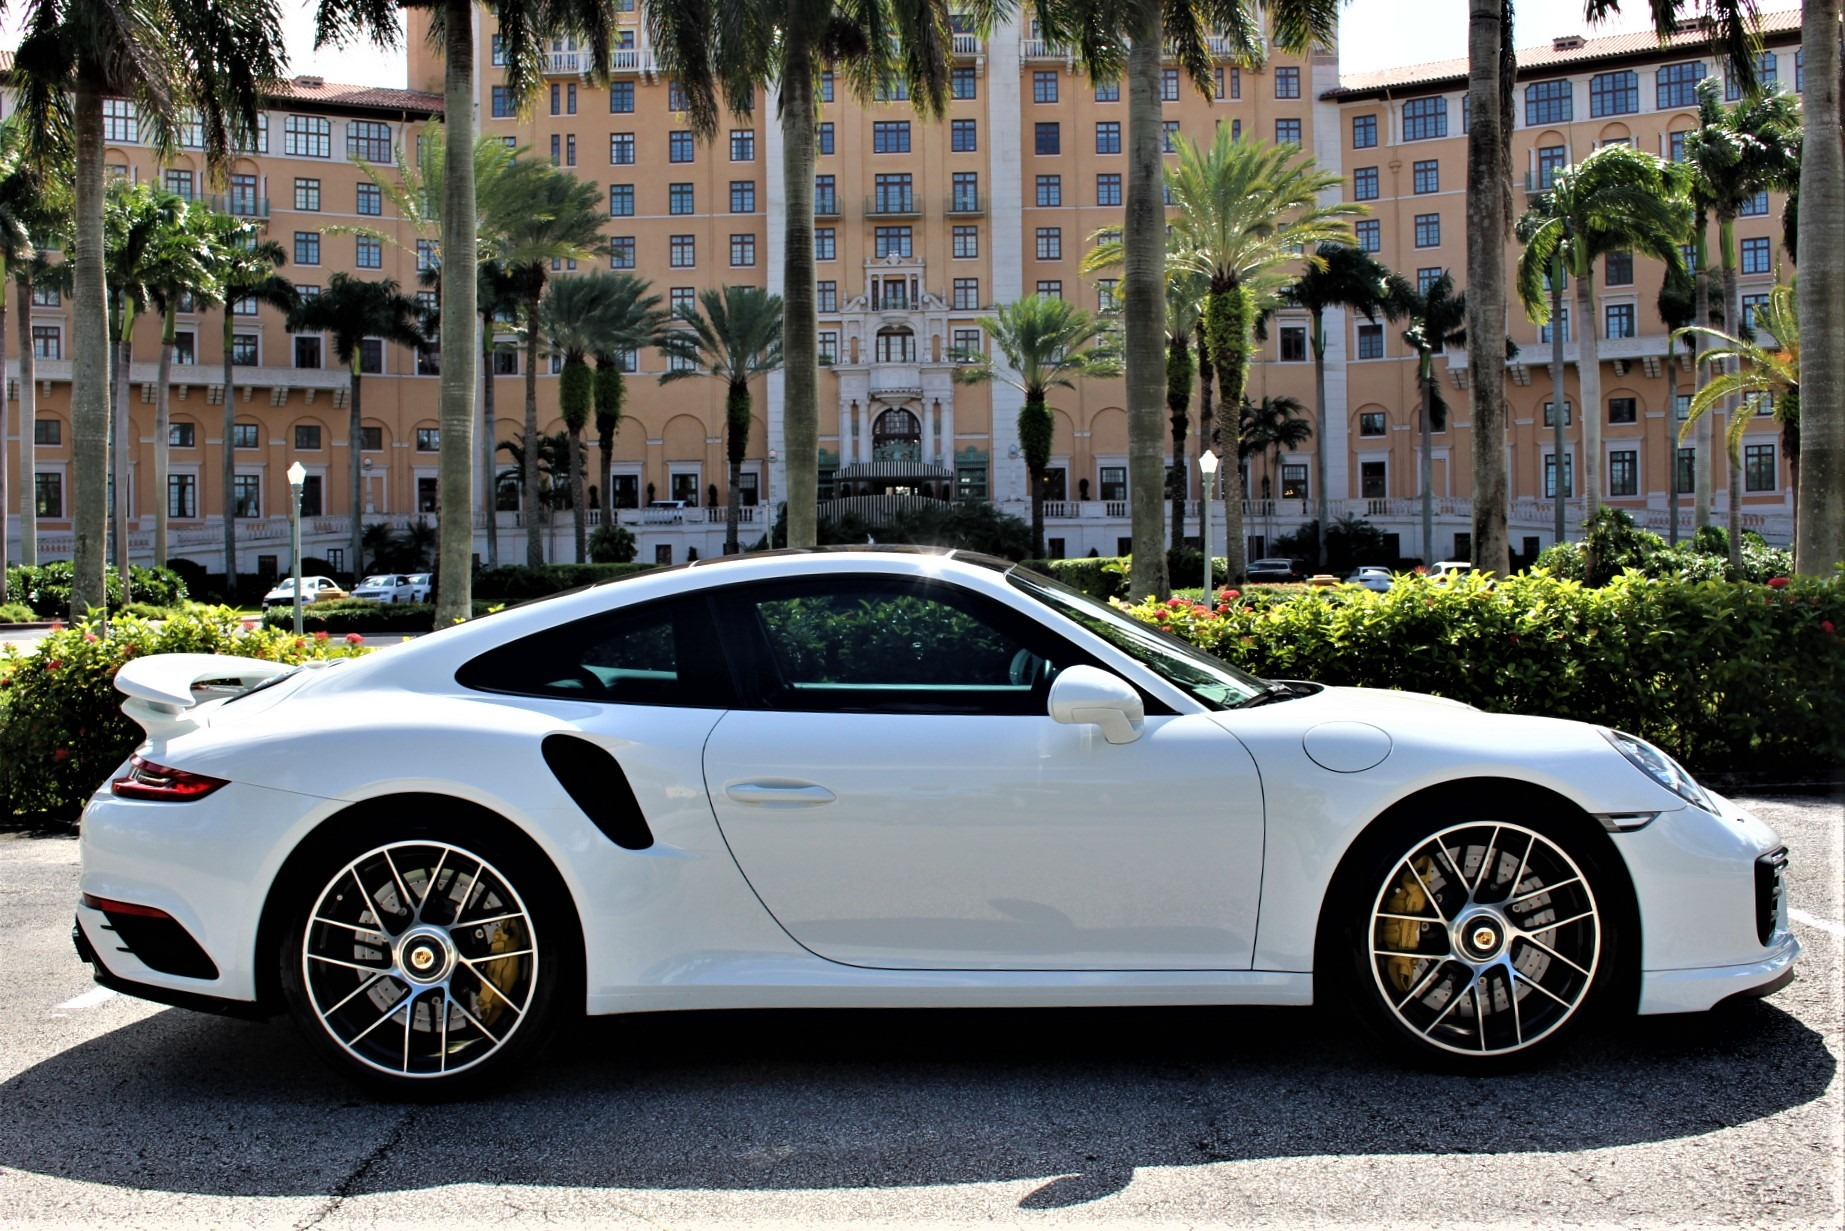 Used 2017 Porsche 911 Turbo S for sale Sold at The Gables Sports Cars in Miami FL 33146 2